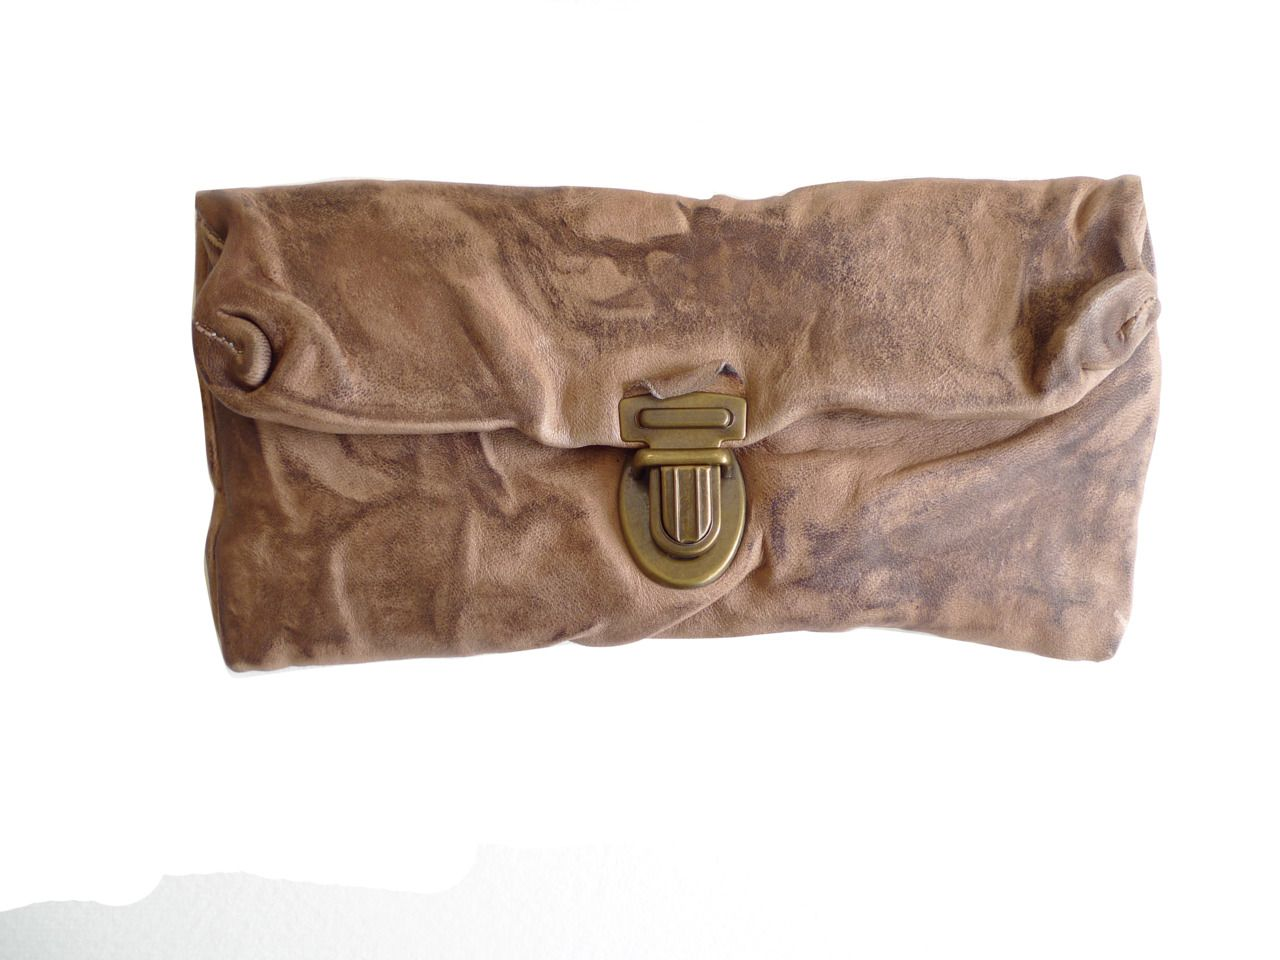 Nutsa Modebadze mini-clutch. Available for purchase, by the way.